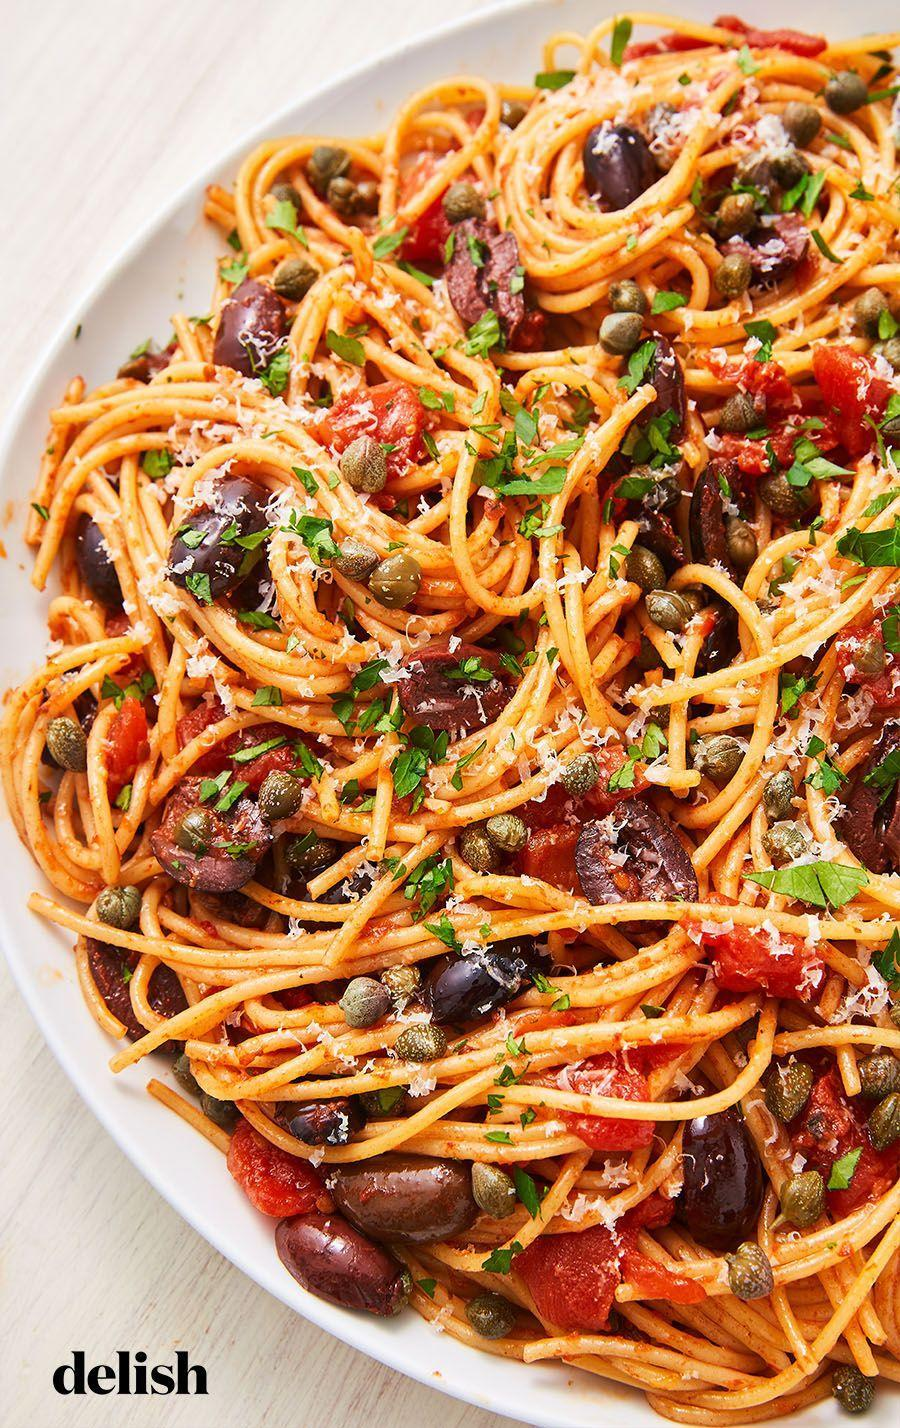 """<p>It's definitely not lacking in the flavor department. </p><p>Get the recipe from <a href=""""https://www.delish.com/cooking/recipe-ideas/a26092759/pasta-puttanesca-recipe/"""" rel=""""nofollow noopener"""" target=""""_blank"""" data-ylk=""""slk:Delish"""" class=""""link rapid-noclick-resp"""">Delish</a>.</p>"""